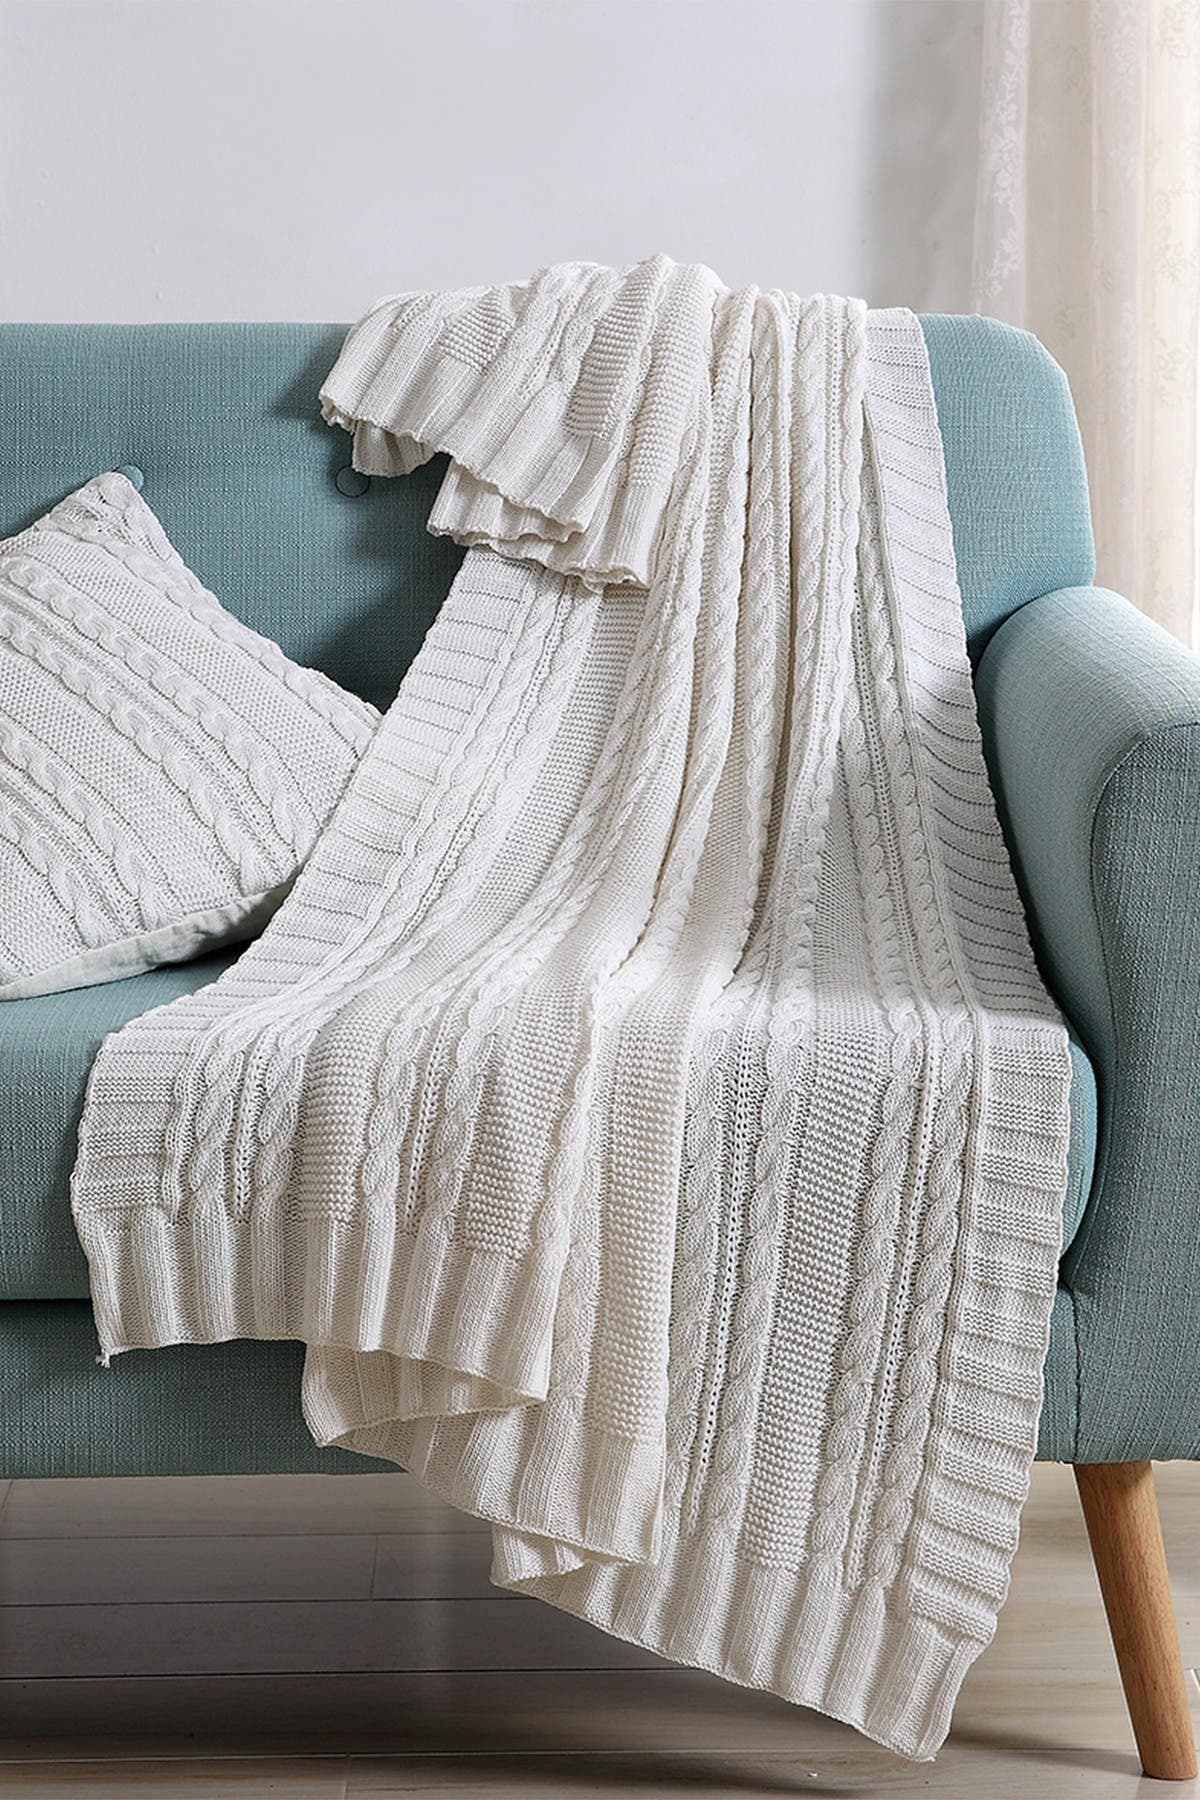 Image of VCNY HOME Dublin Cable Knit Throw Blanket - White